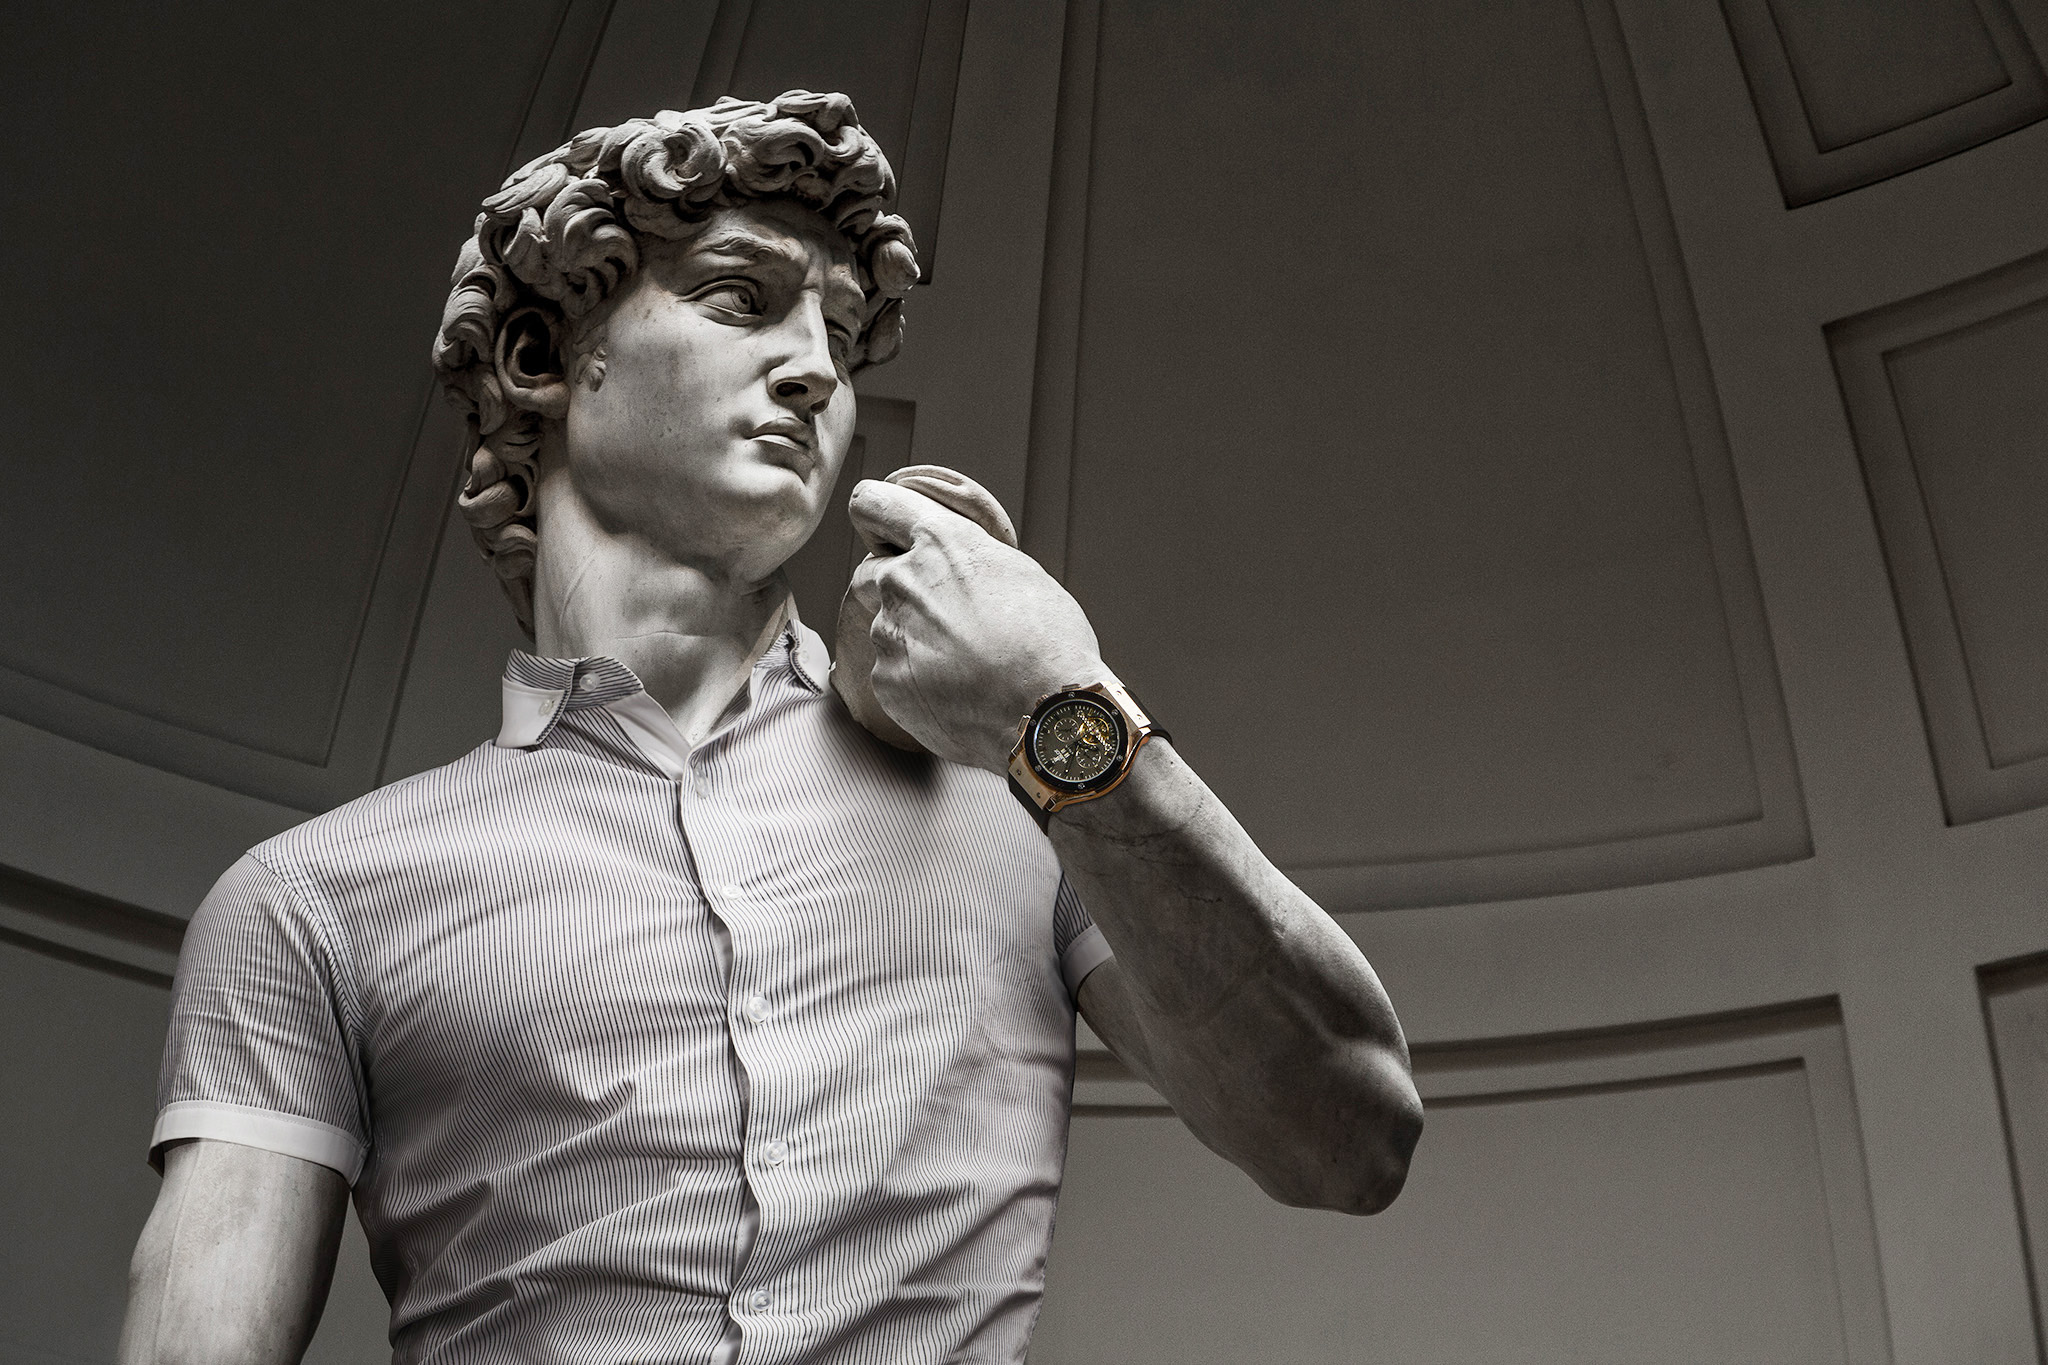 Hipsters in Stone: see Greek statues in the trendiest fashions at select museums - Lonely Planet Travel News. Article by James Gabriel Martin. Photographs by Leo Caillard